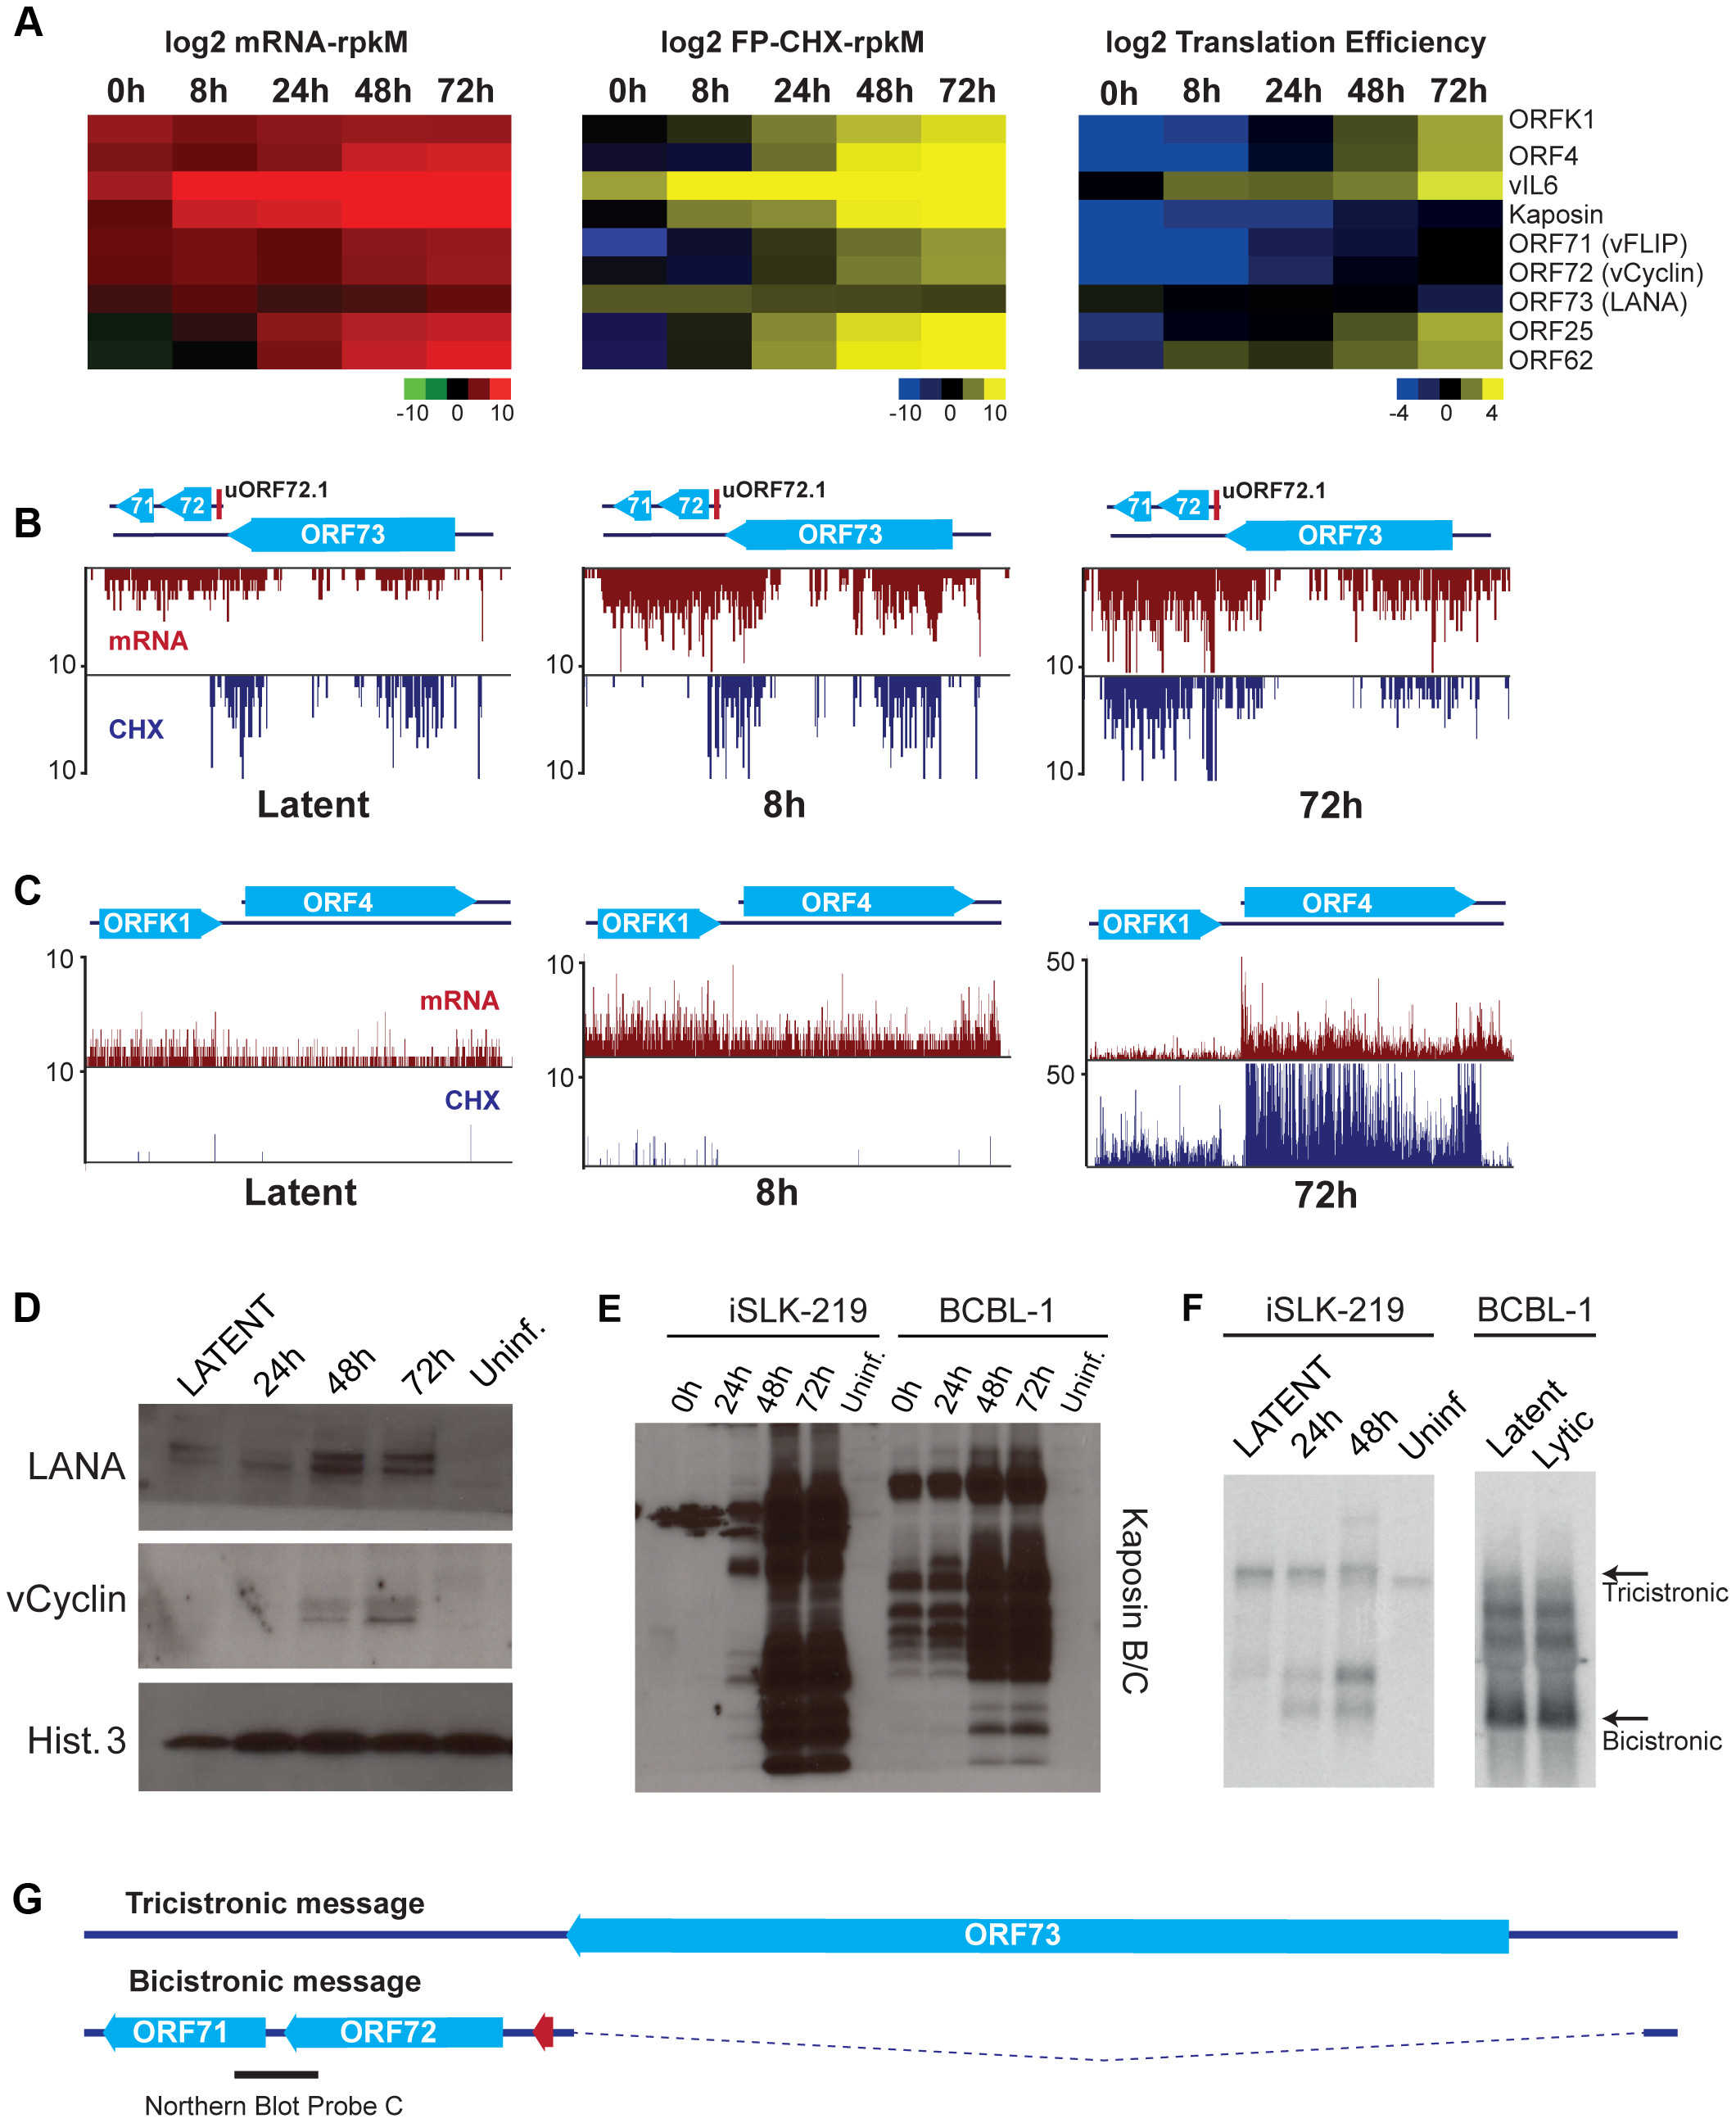 Gene expression is limited during latency in iSLK-219 cells.